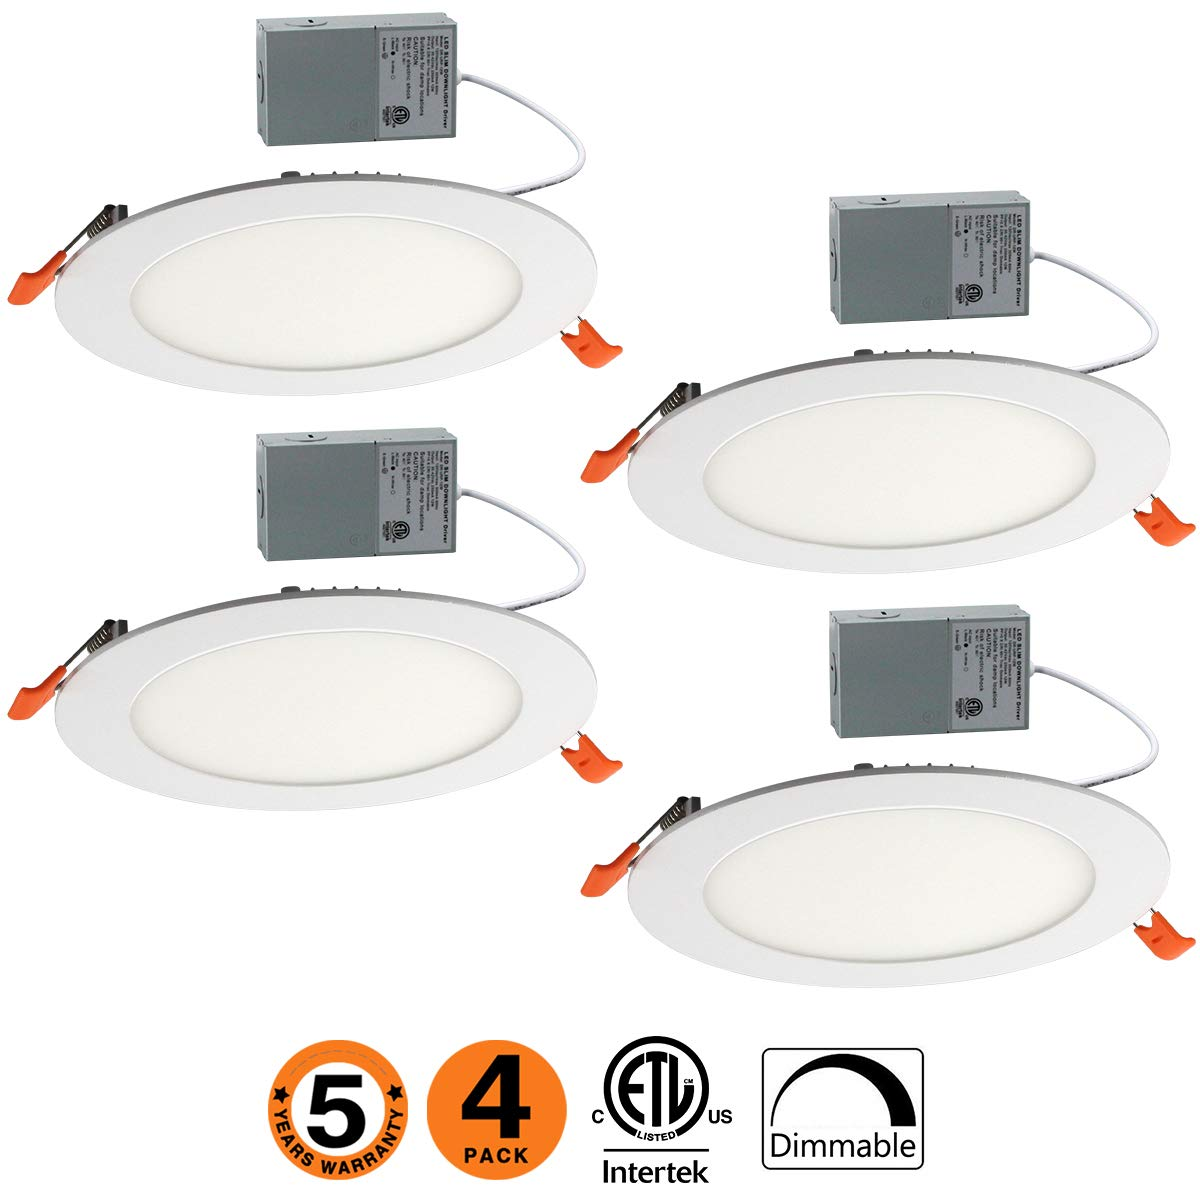 OOOLED 6 Inch Slim Downlight Dimmable 12W (=100W) Led Downlight 850LM 3000K Warm White cETLus listed Recessed Trim Ceiling Light Fixture, led ceiling light,4 Pack (3000K Warmlight) VVVLIGHT